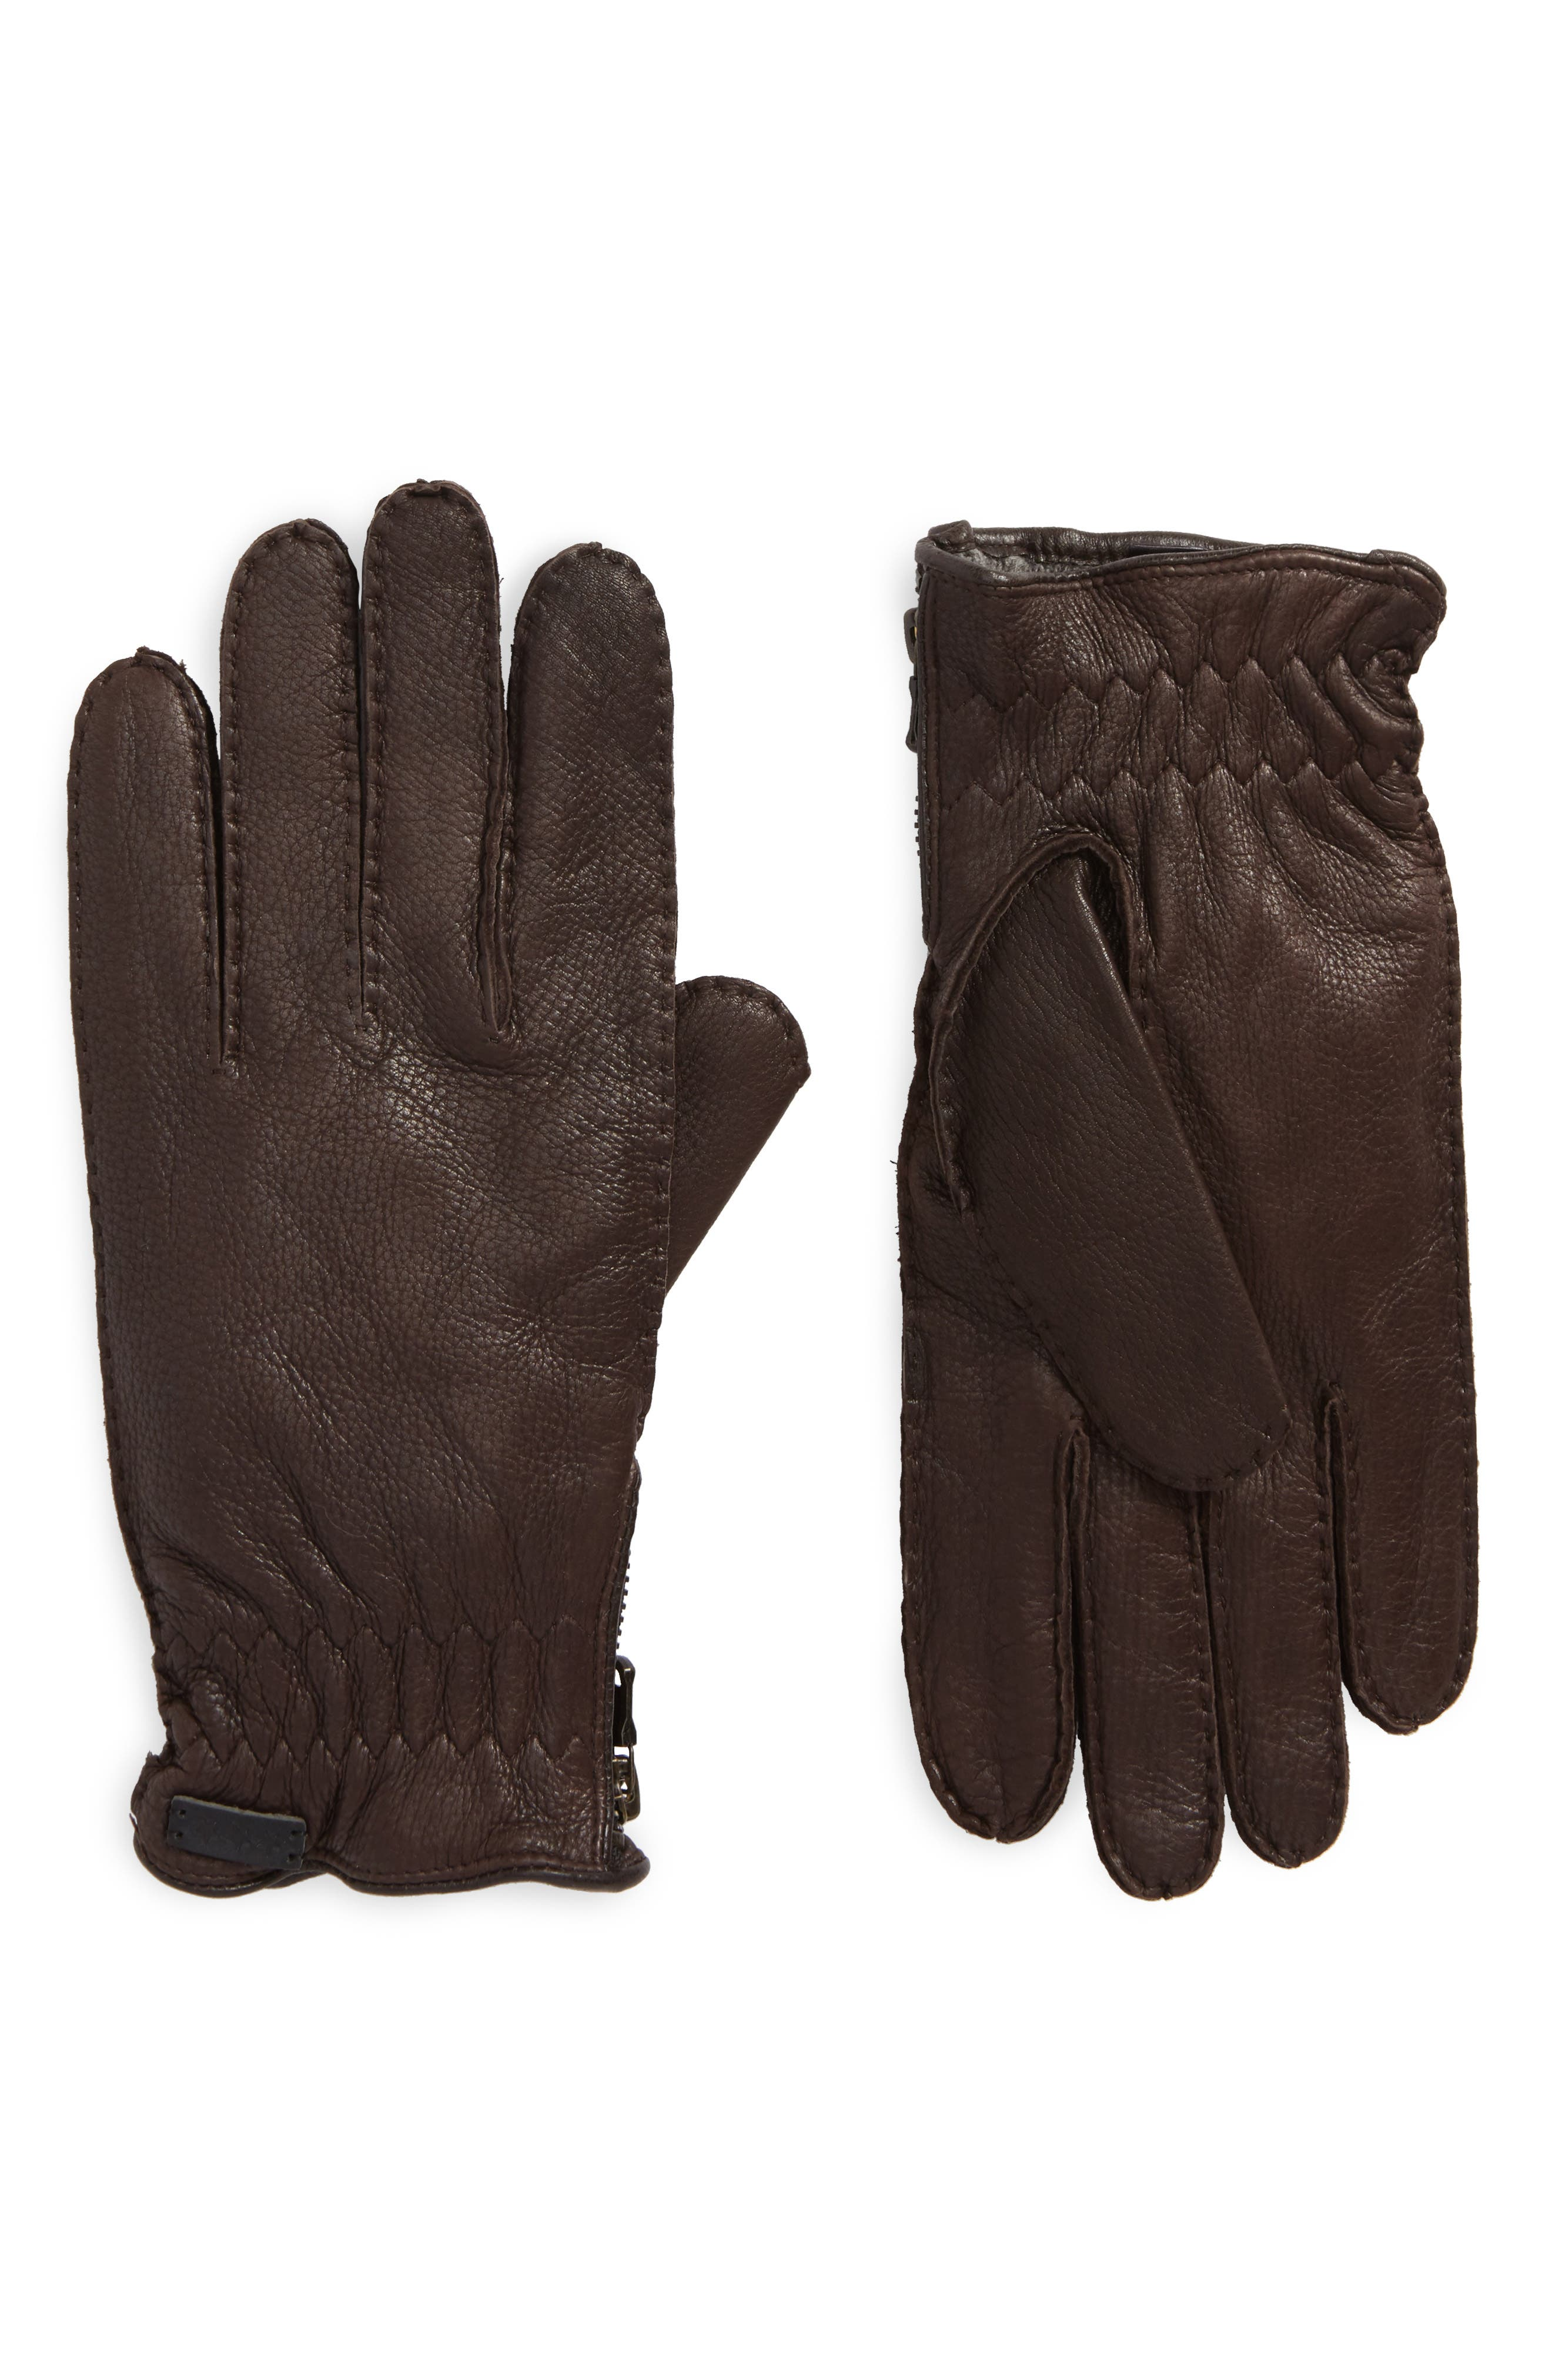 Deerskin Leather Gloves,                         Main,                         color, Chocolate